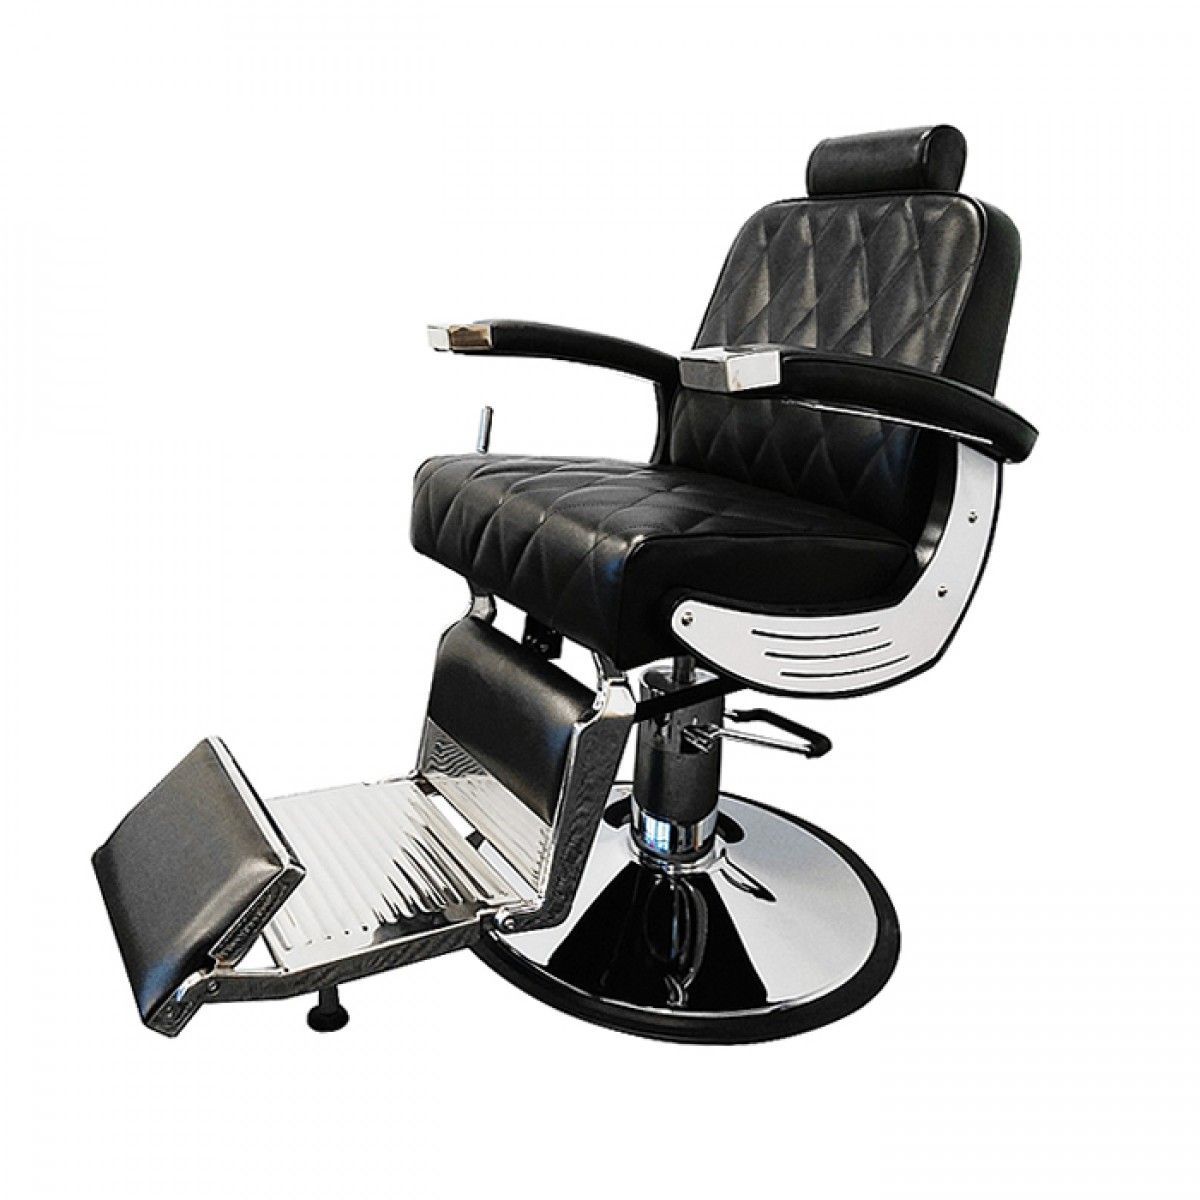 Baron Barber Chair With Heavy Duty Pump Barber Chair Barber